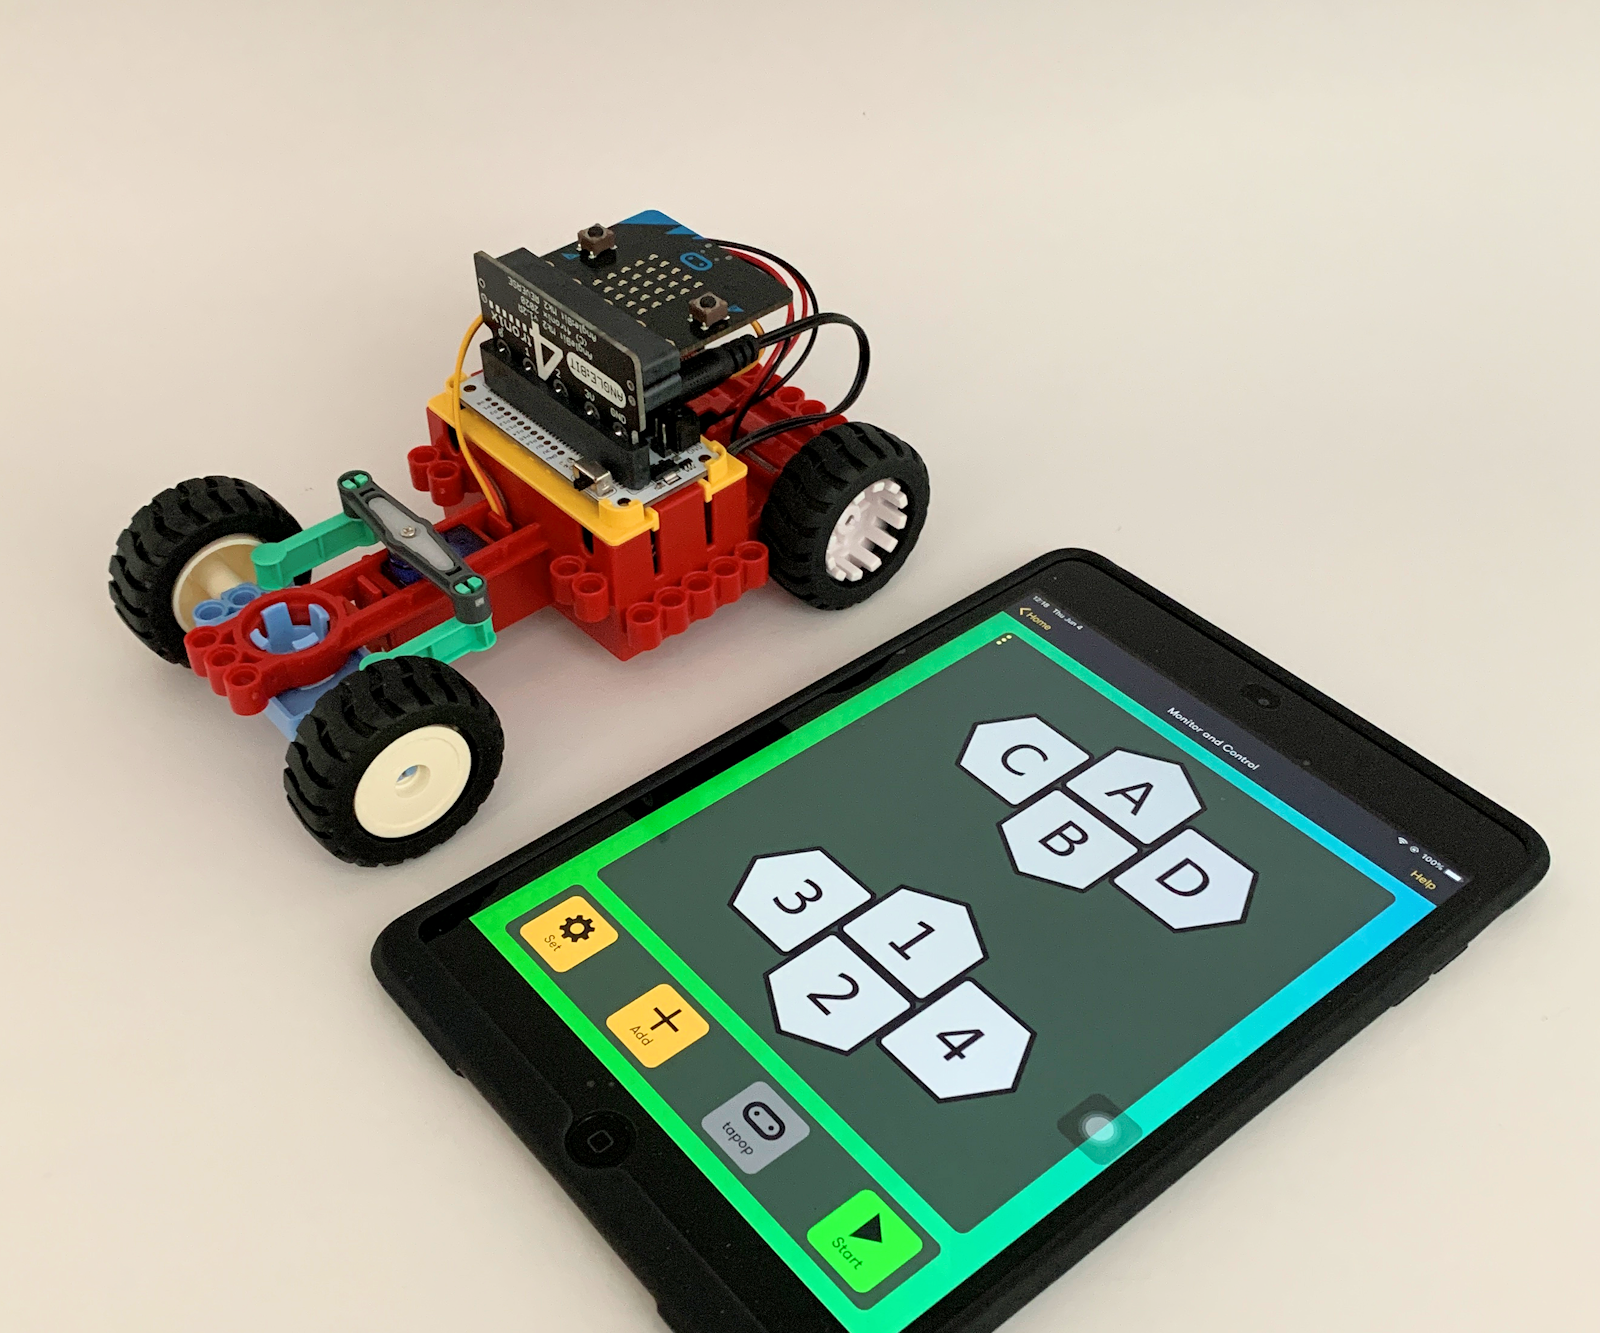 Using IPhone or IPad and Micro:bit Game Pad App to Control an RC Car